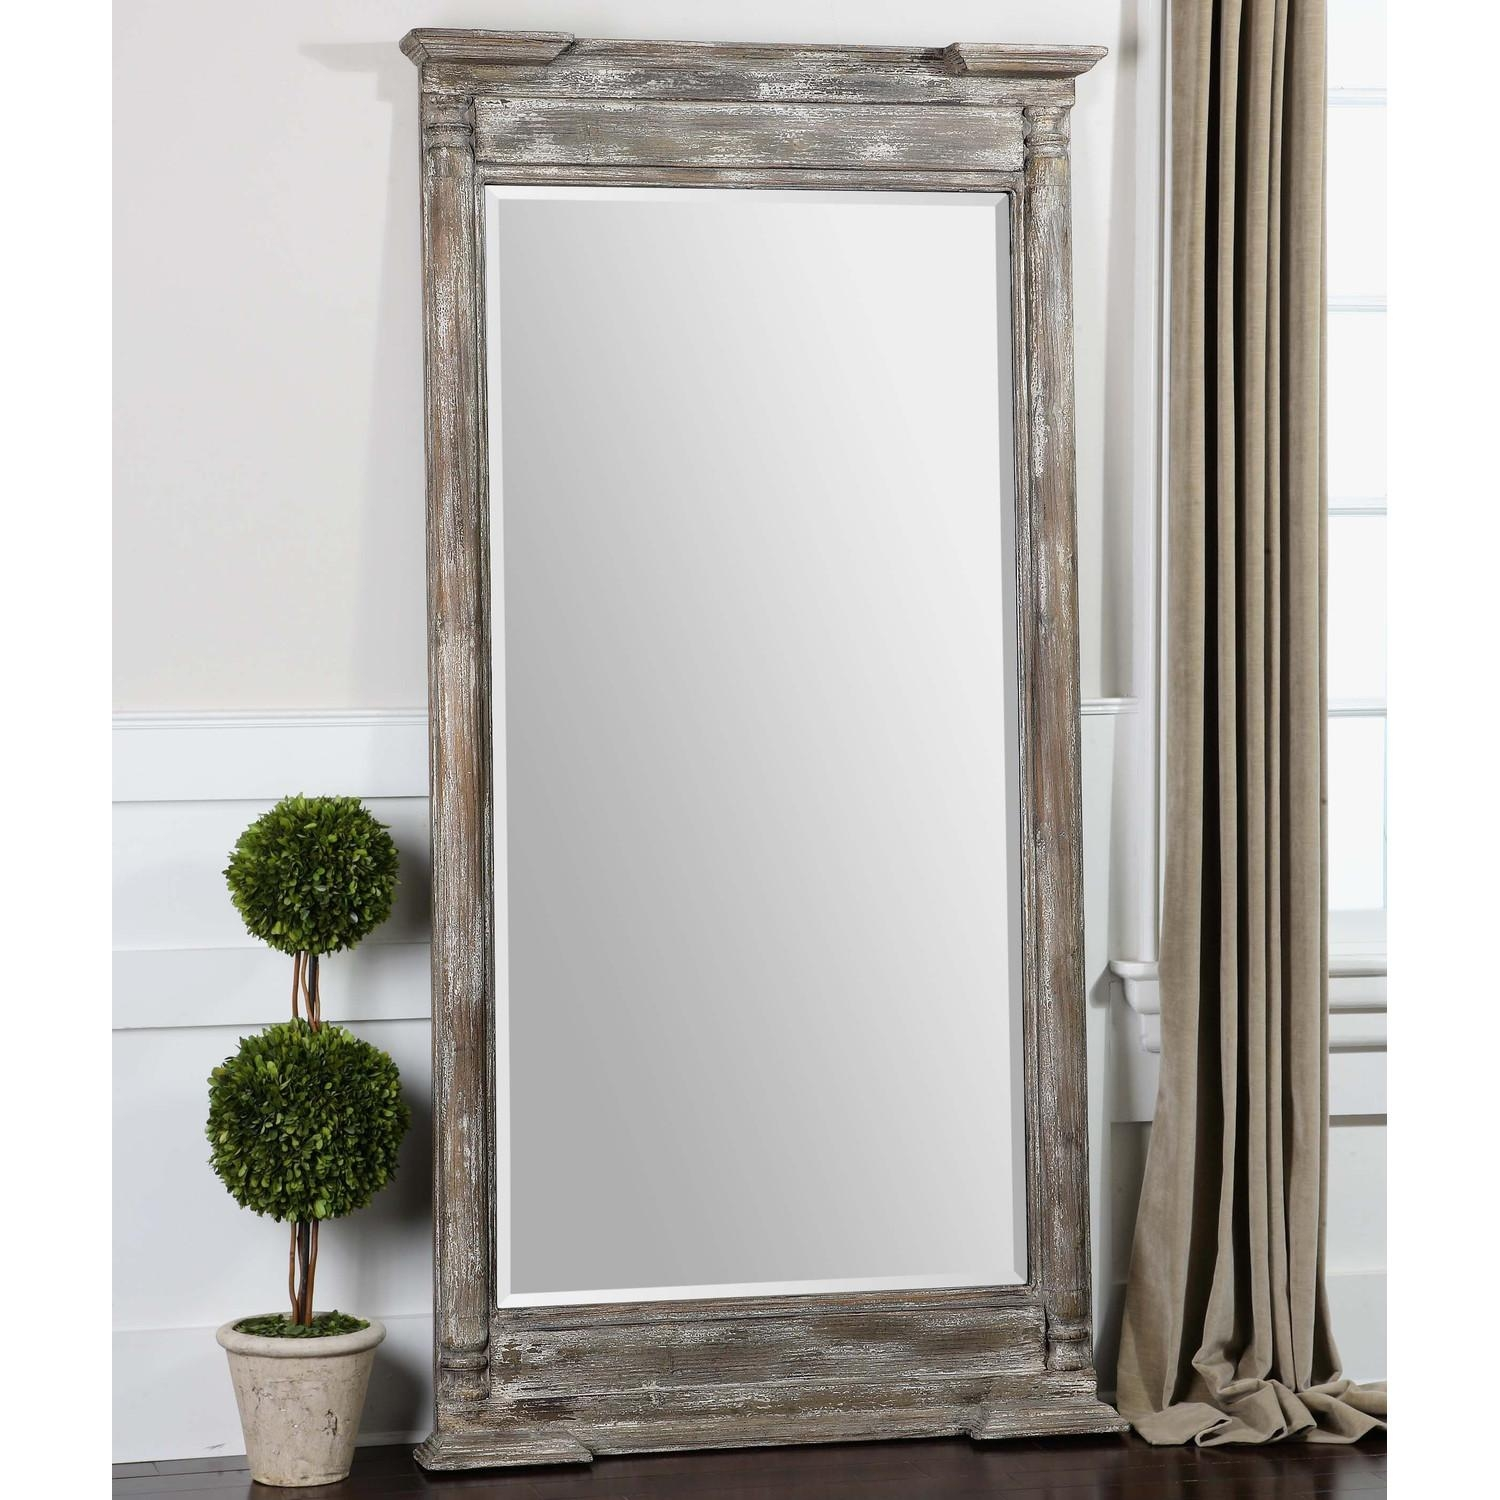 Antique Full Length Mirror 112 Cool Ideas For Full Size Of In Antique Full Length Wall Mirror (Image 1 of 20)